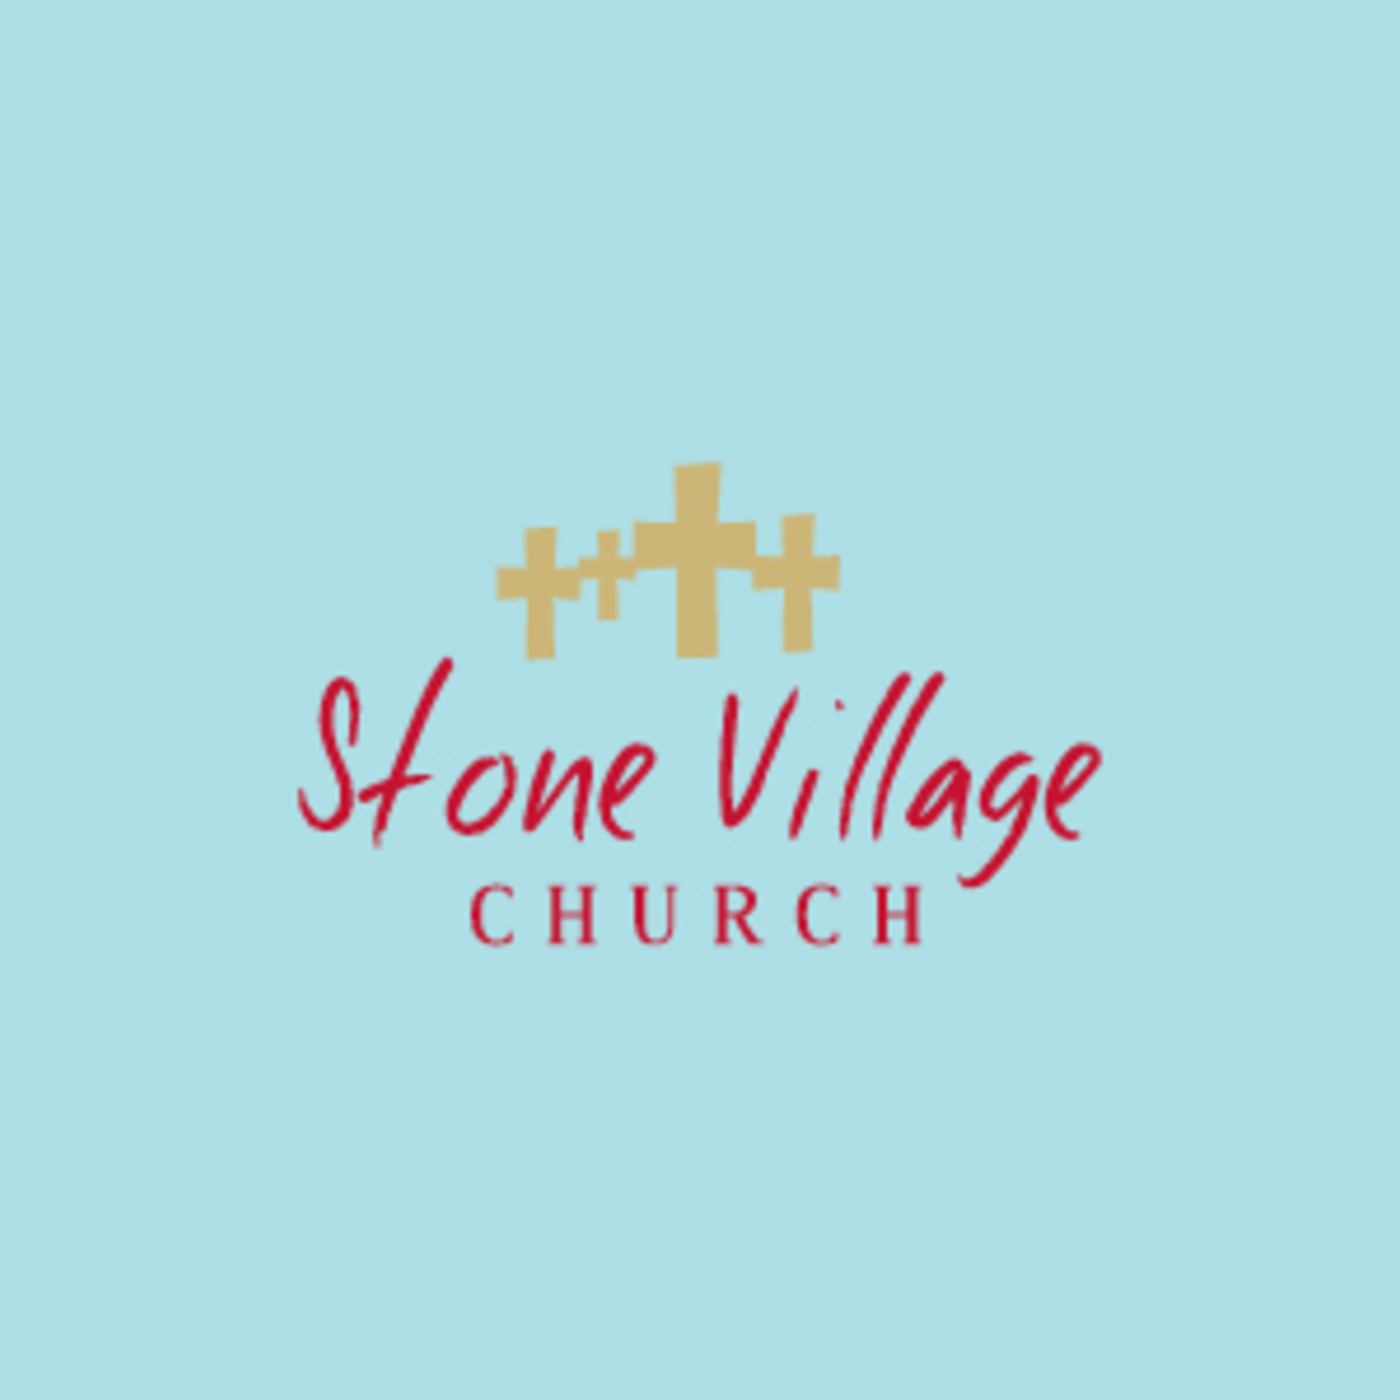 Stone Village Church